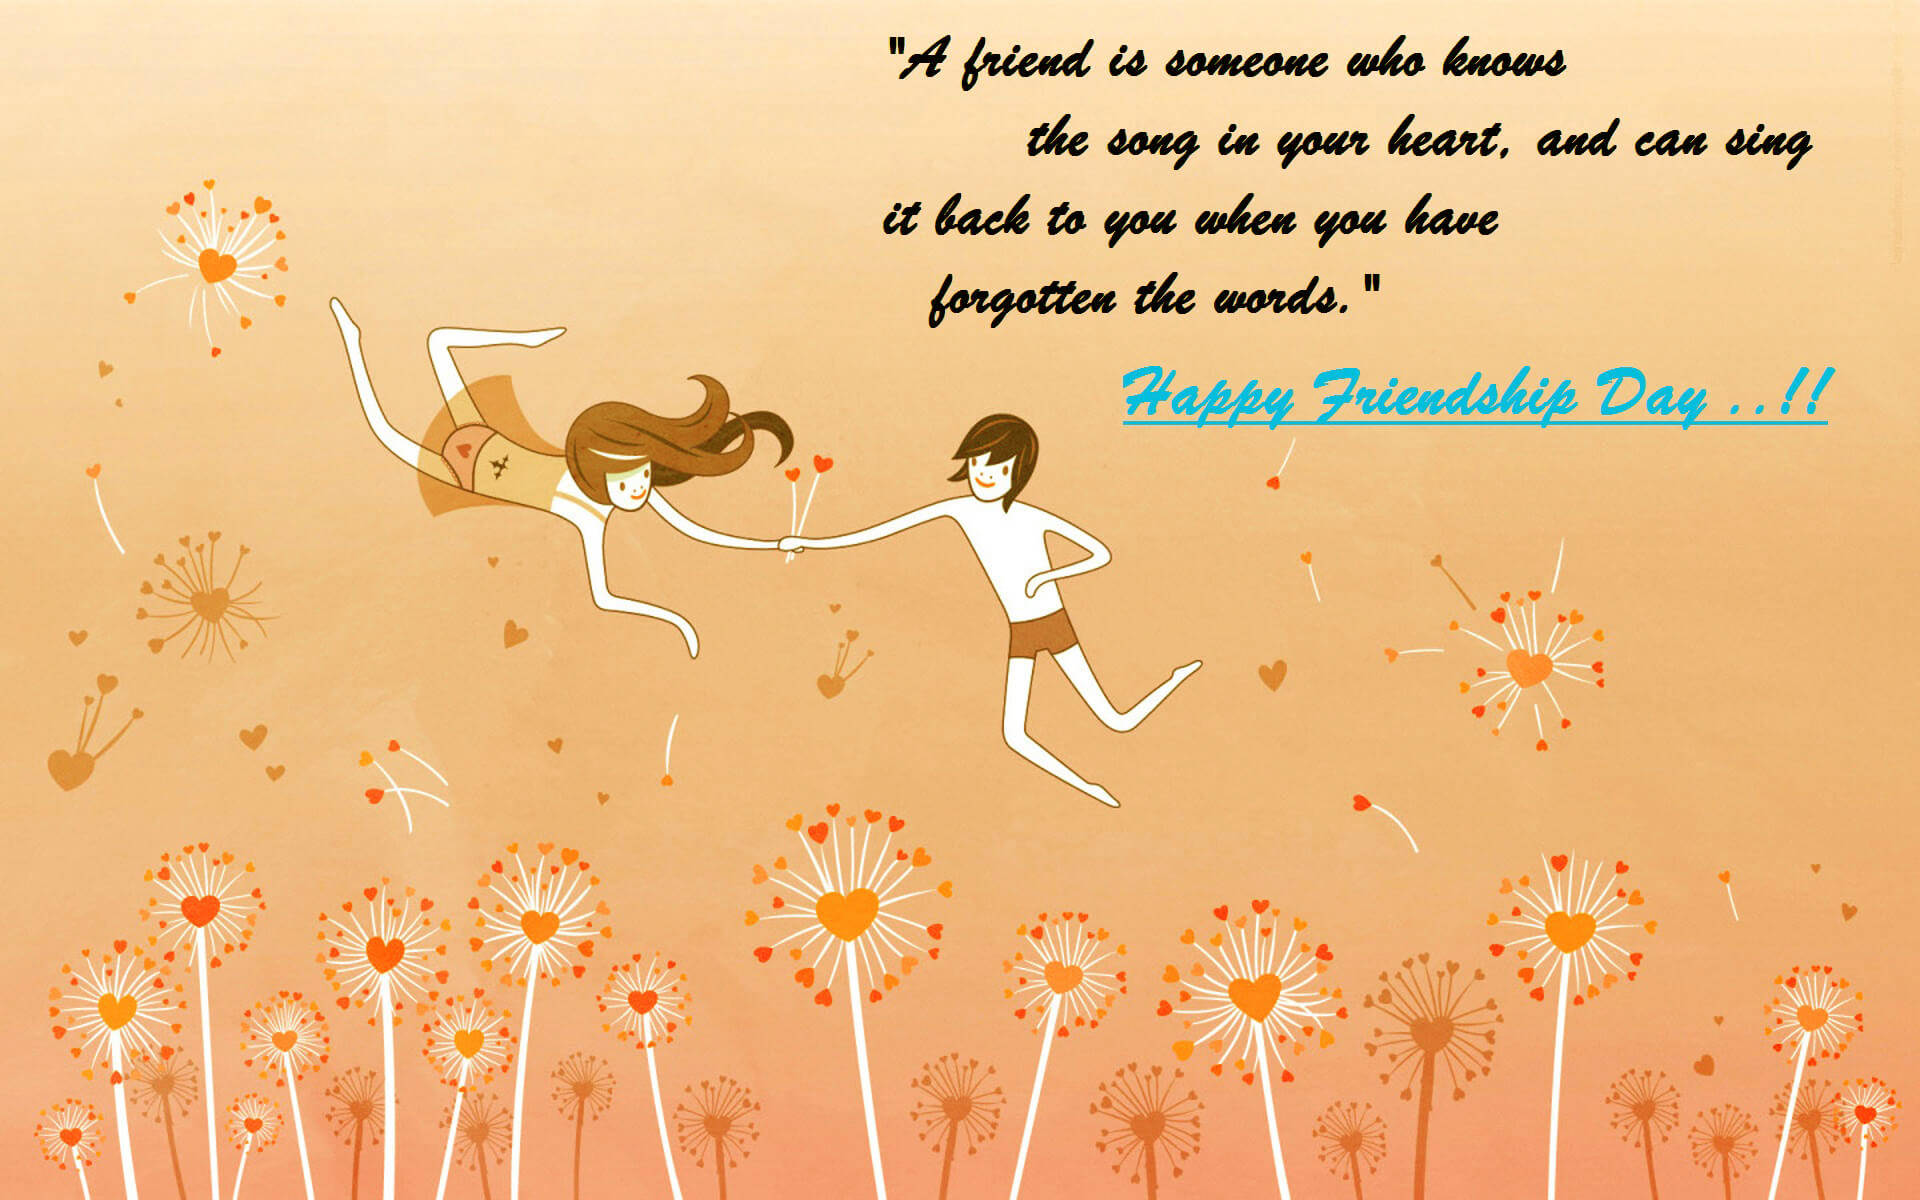 Happy friendship day quotes thoughts wallpaper 2880x1800 2560x1600 2048x1536 1920x1200 1920x1080 altavistaventures Image collections